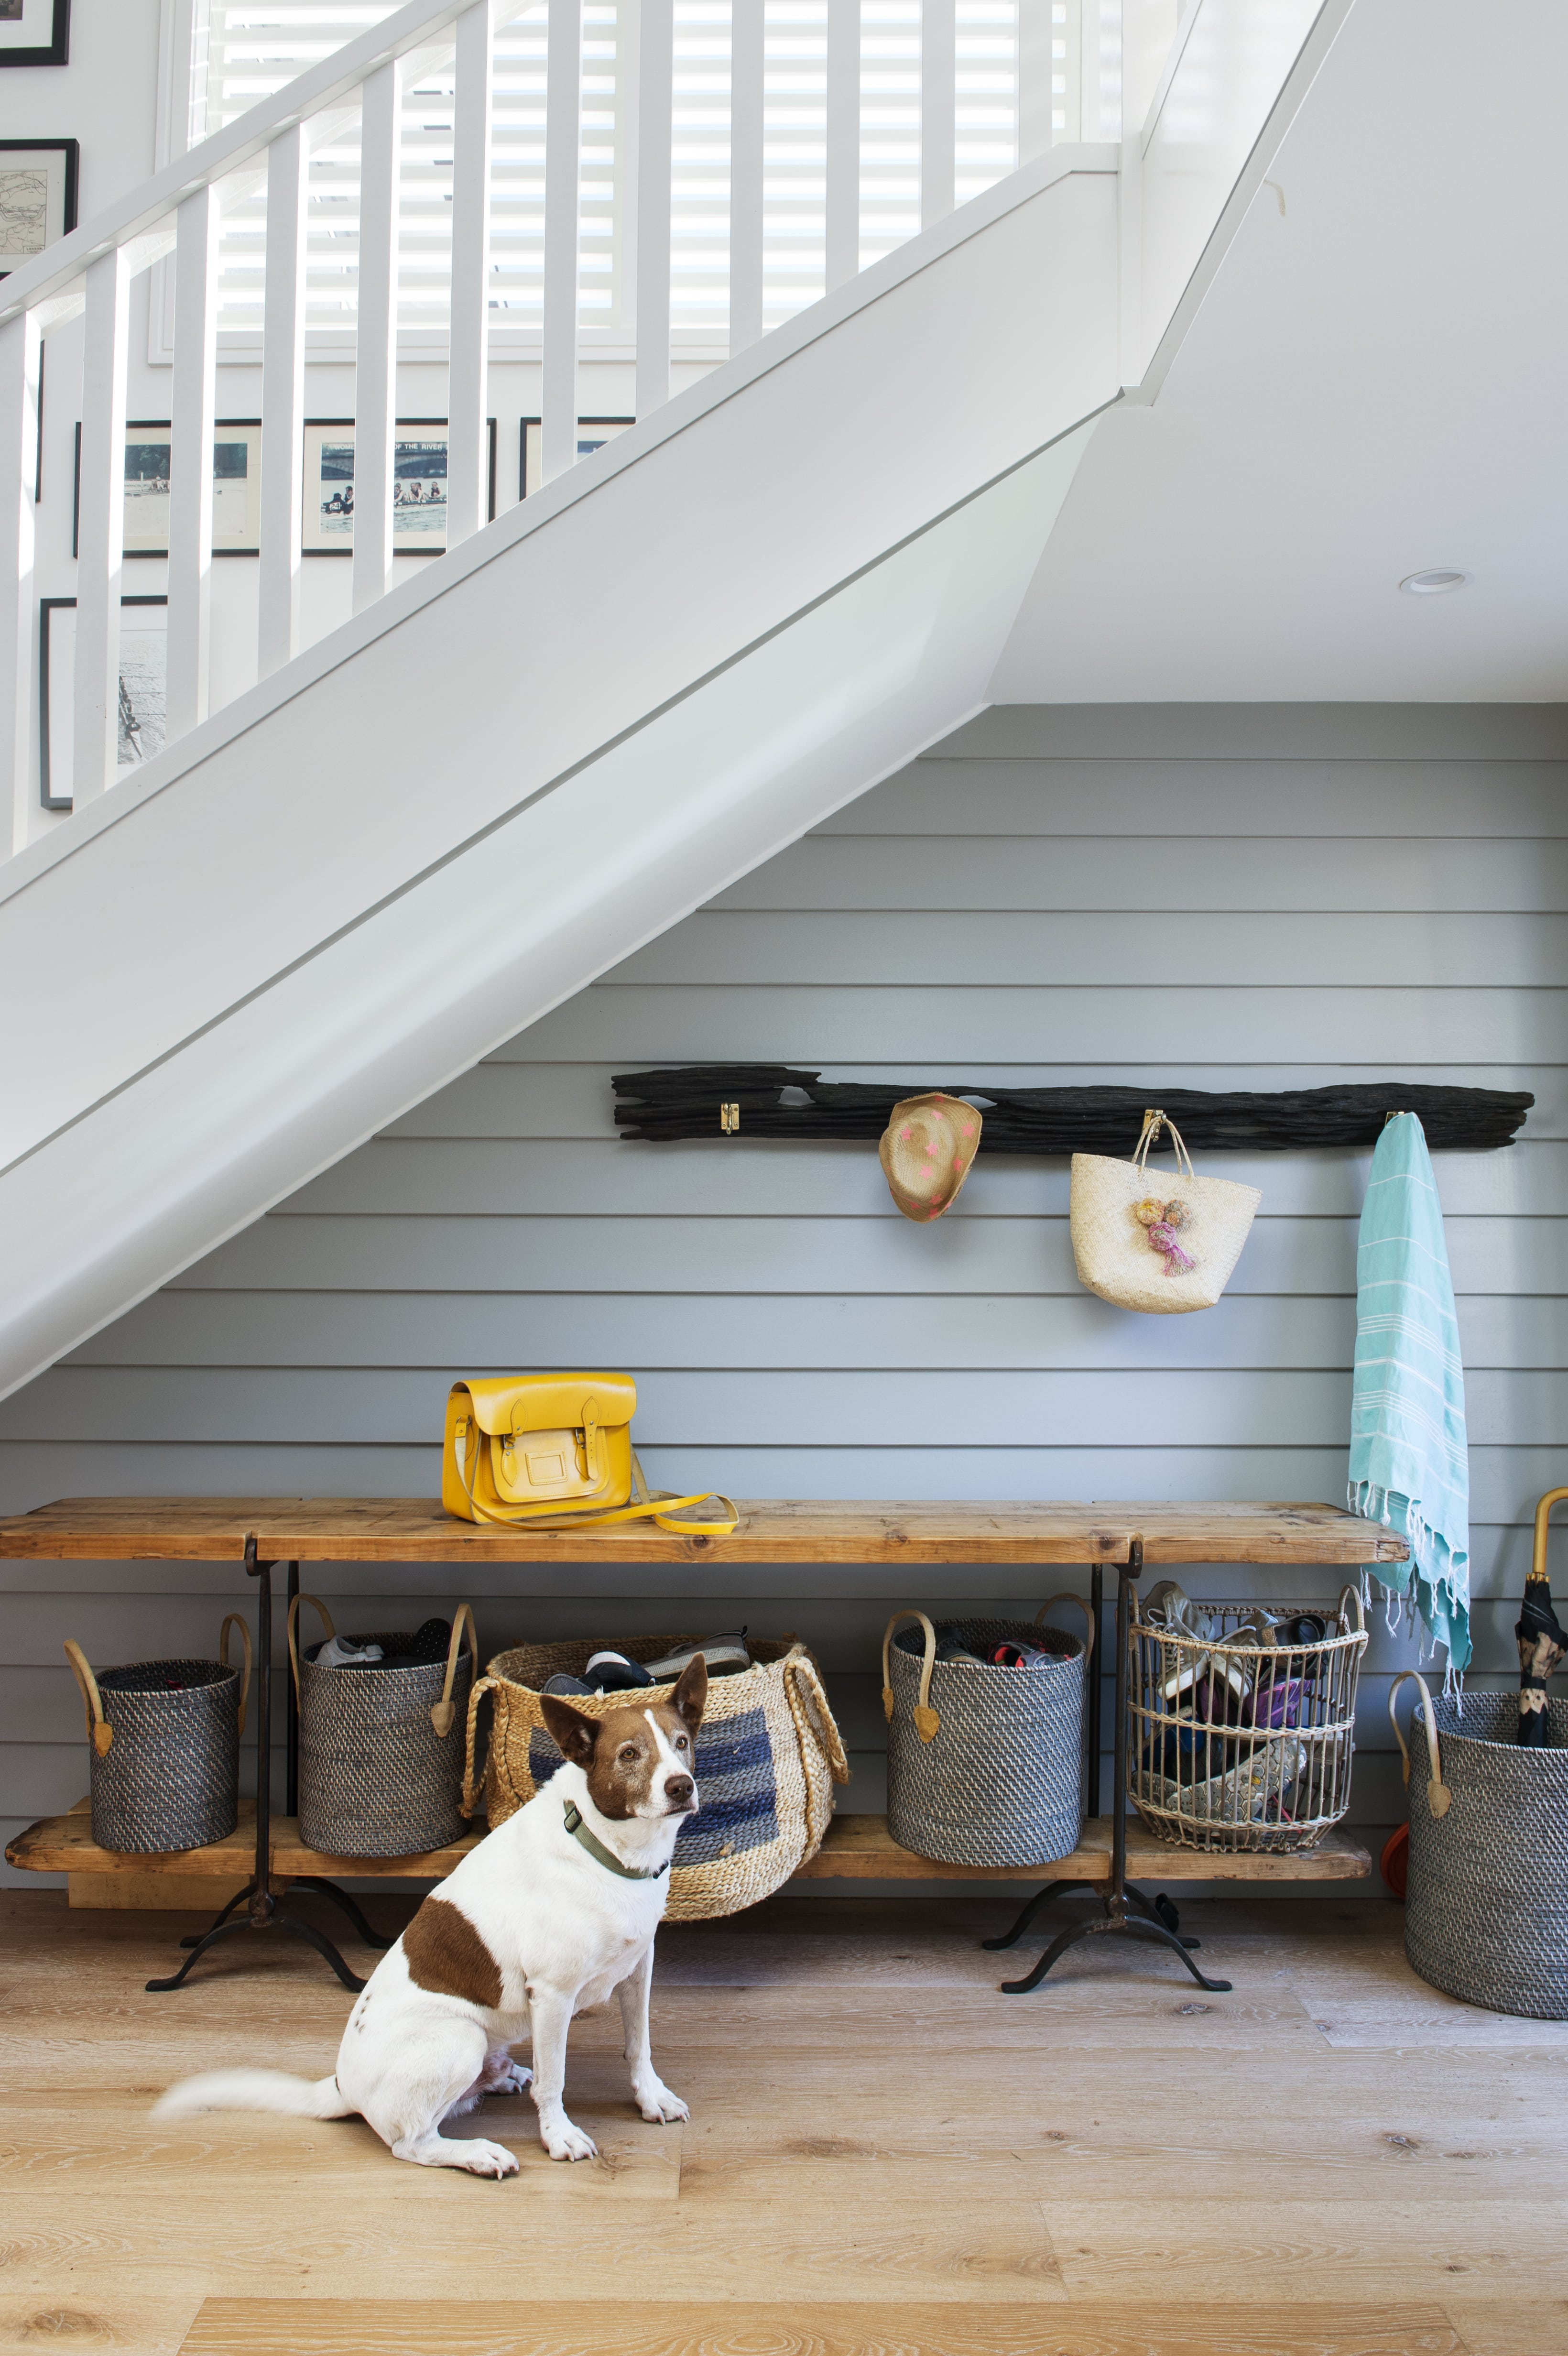 Gallery Of The Big Beach Shack By Tash Clarke Architects Local Australian Design And Interiors Freshwater, Nsw Image 2